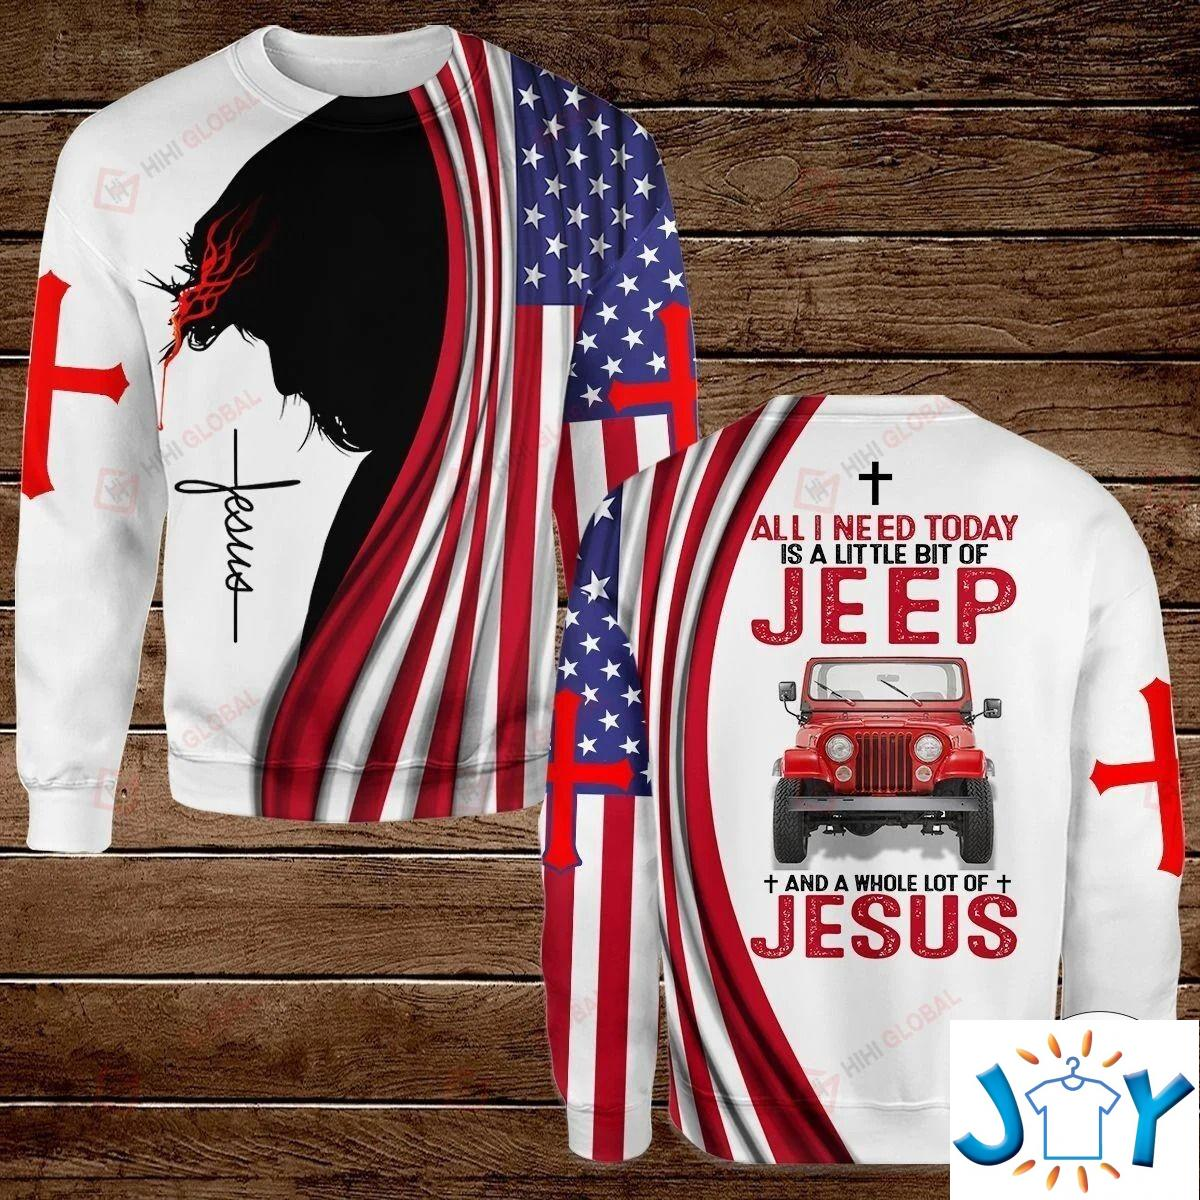 All I Need Today Is A Little Bit Of Jeep And A Whole Lot Of Jesus Hawaiian Shirt, Hoodies And Sweatshirt